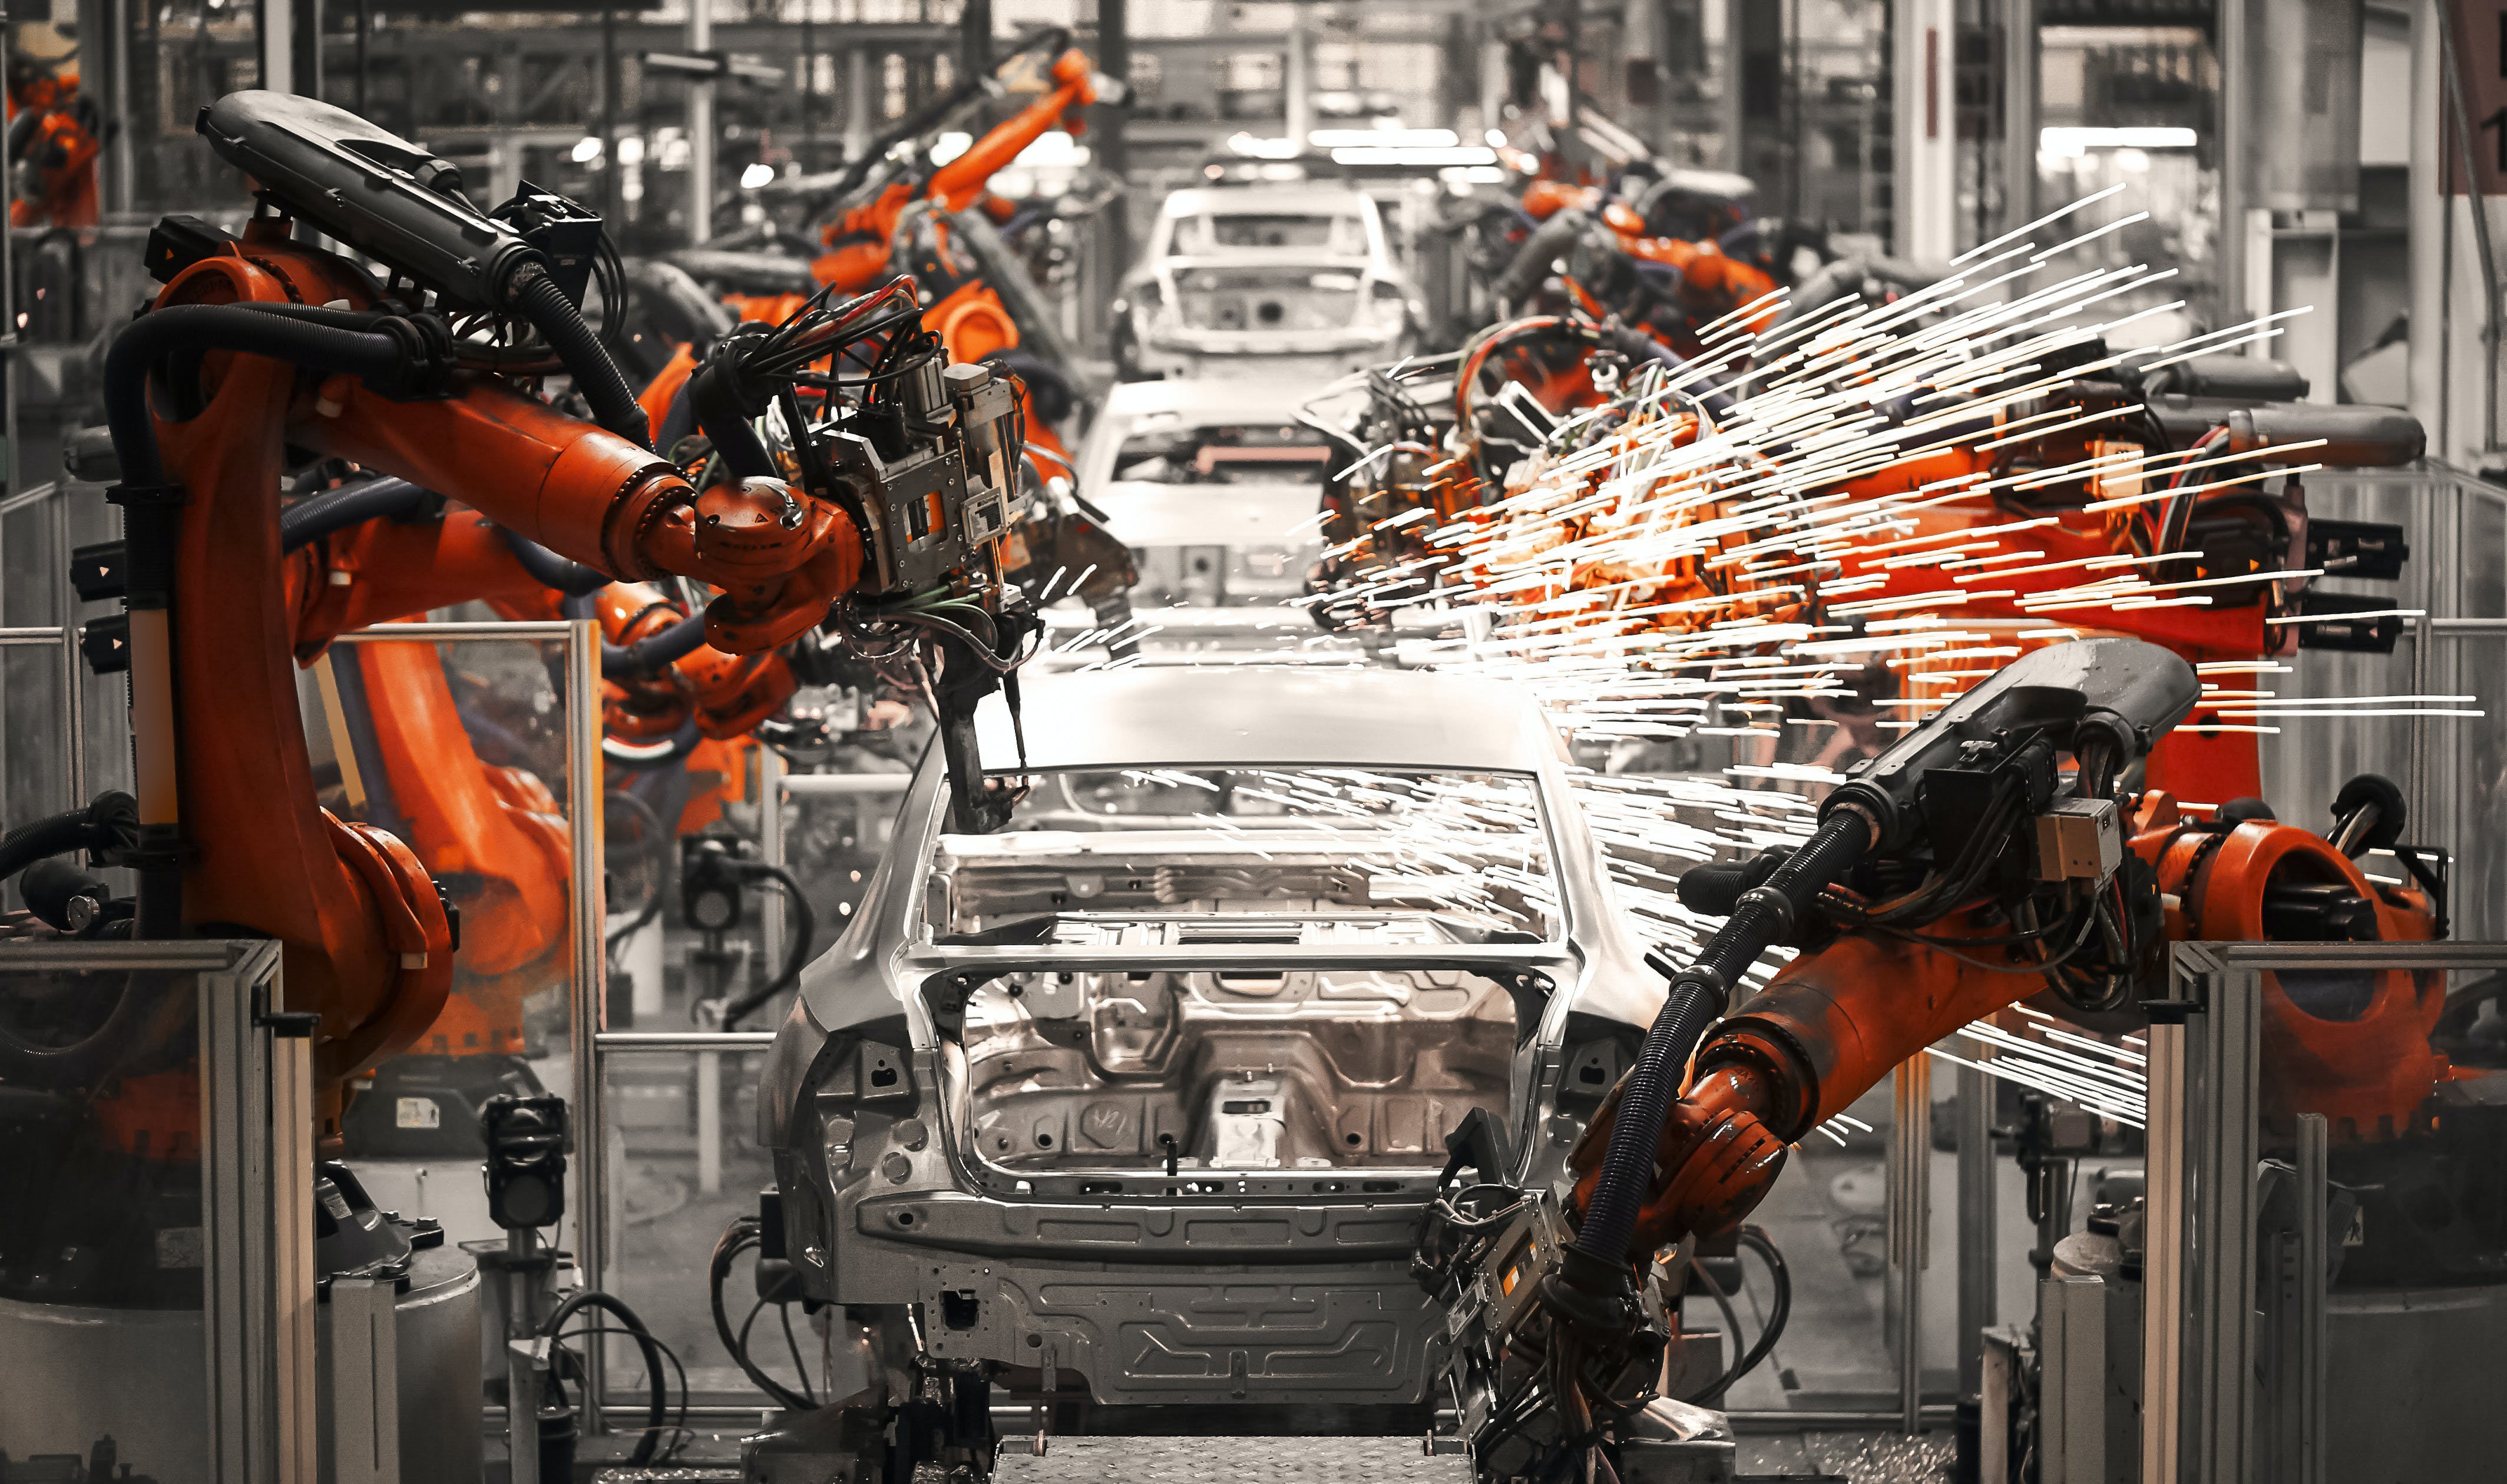 inside a automobile factory with robotic arms